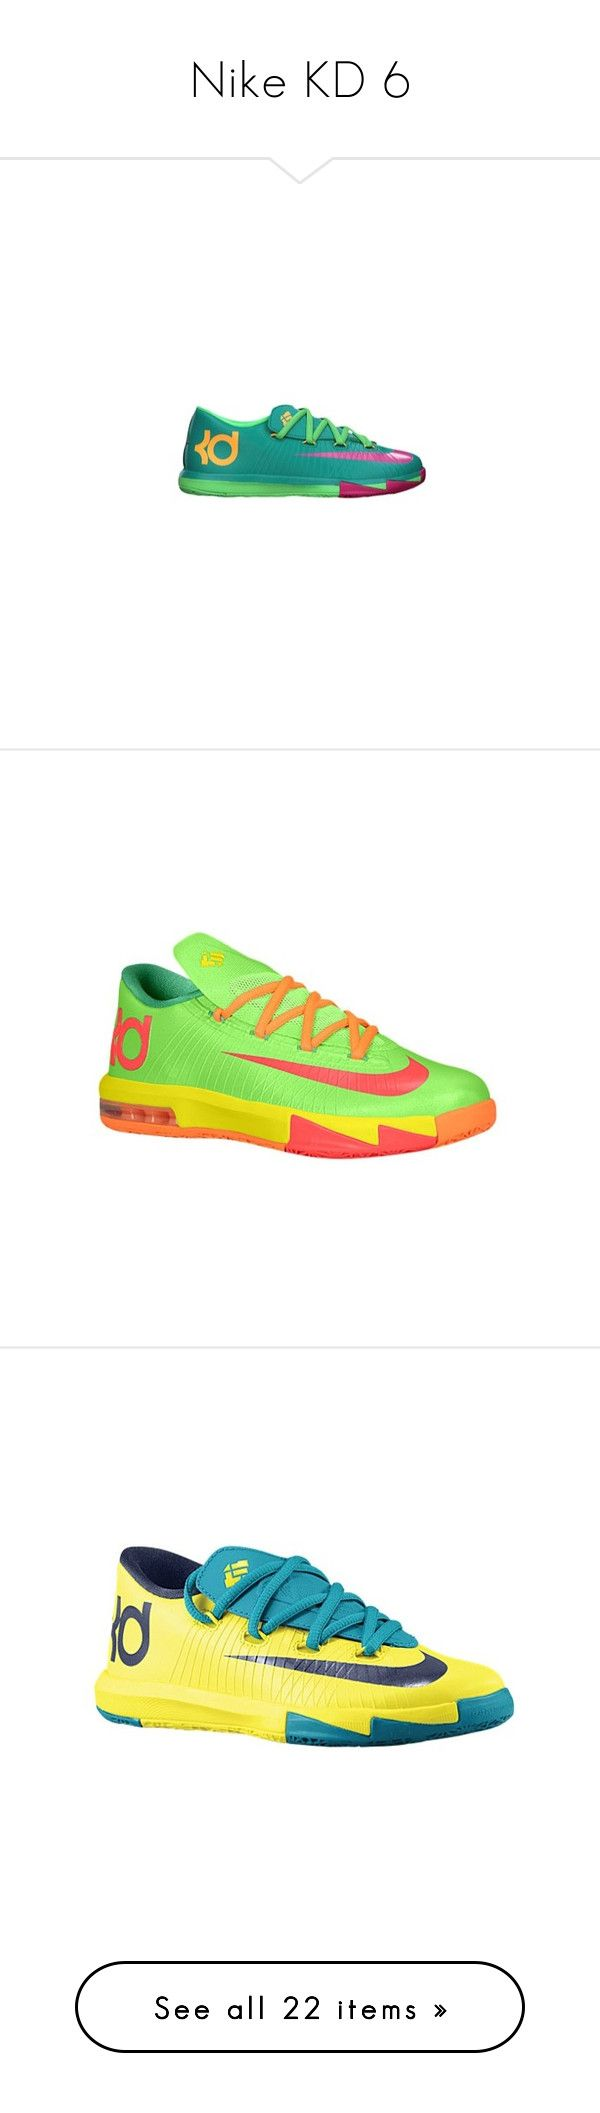 """Nike KD 6"" by aniahrhichkhidd ❤ liked on Polyvore featuring shoes, kd, sneakers, nike, jordans, kd's and kds"